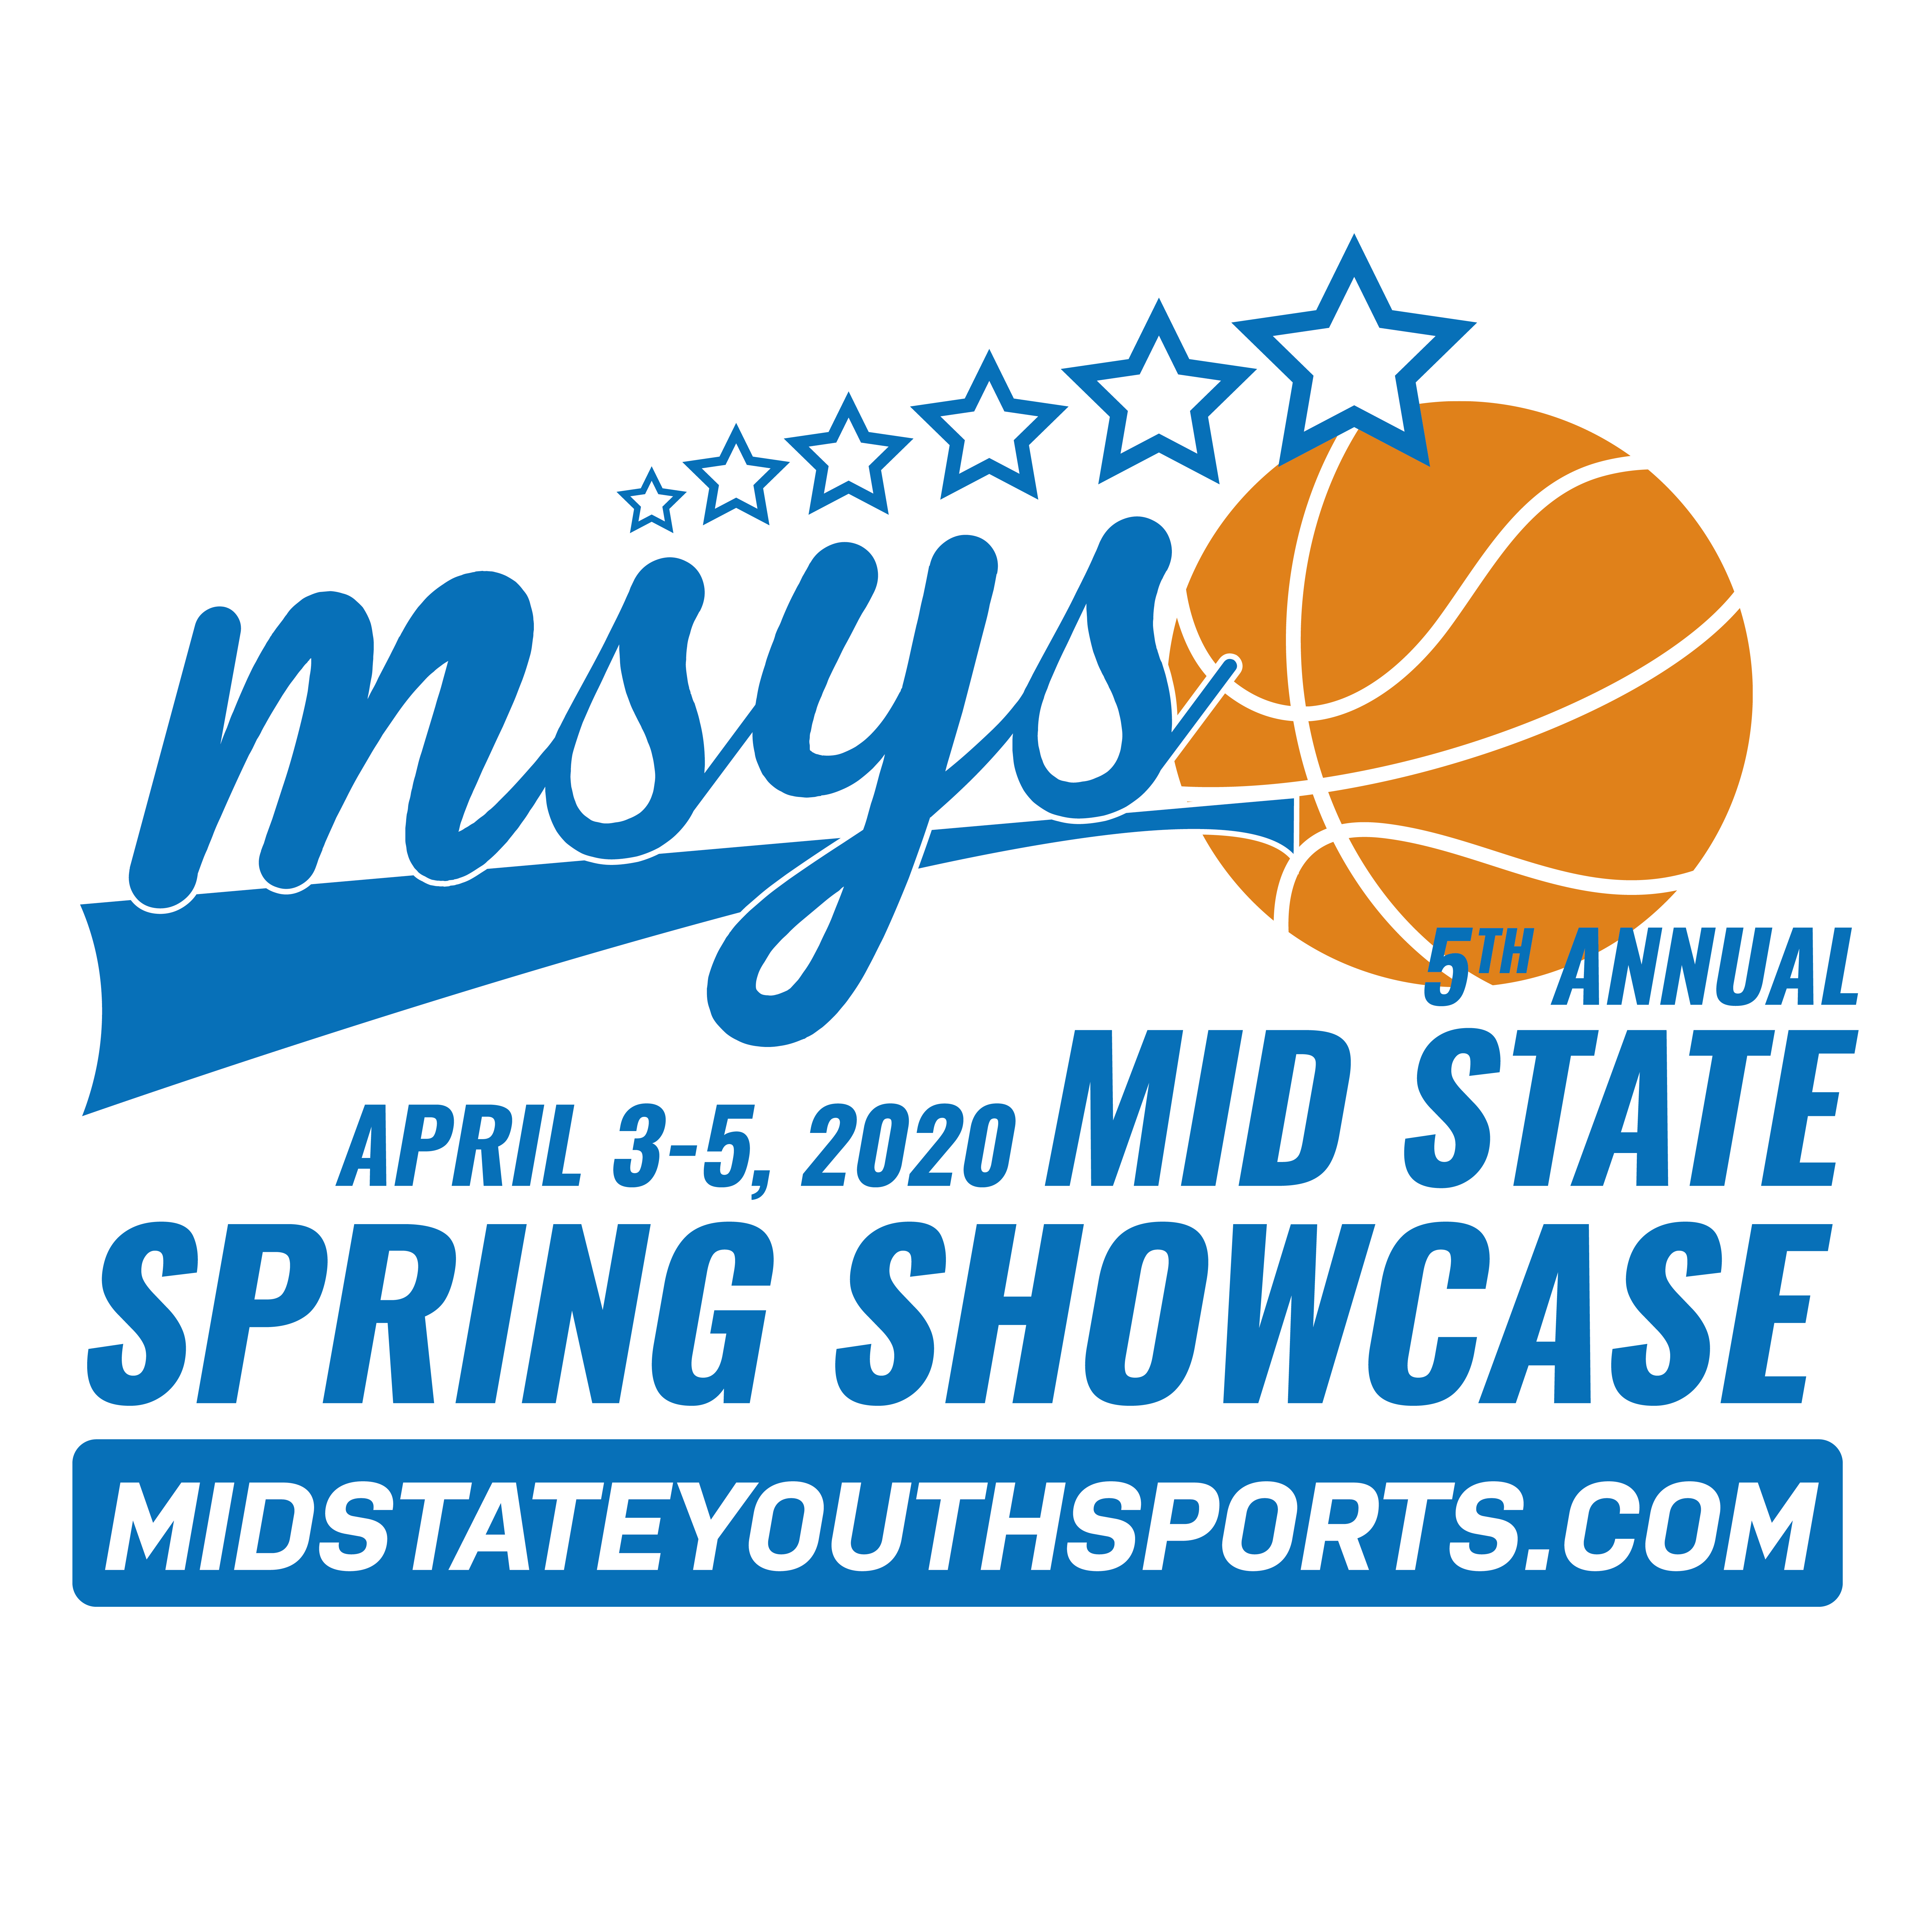 MSYS 5th Annual Mid State Spring Showcase